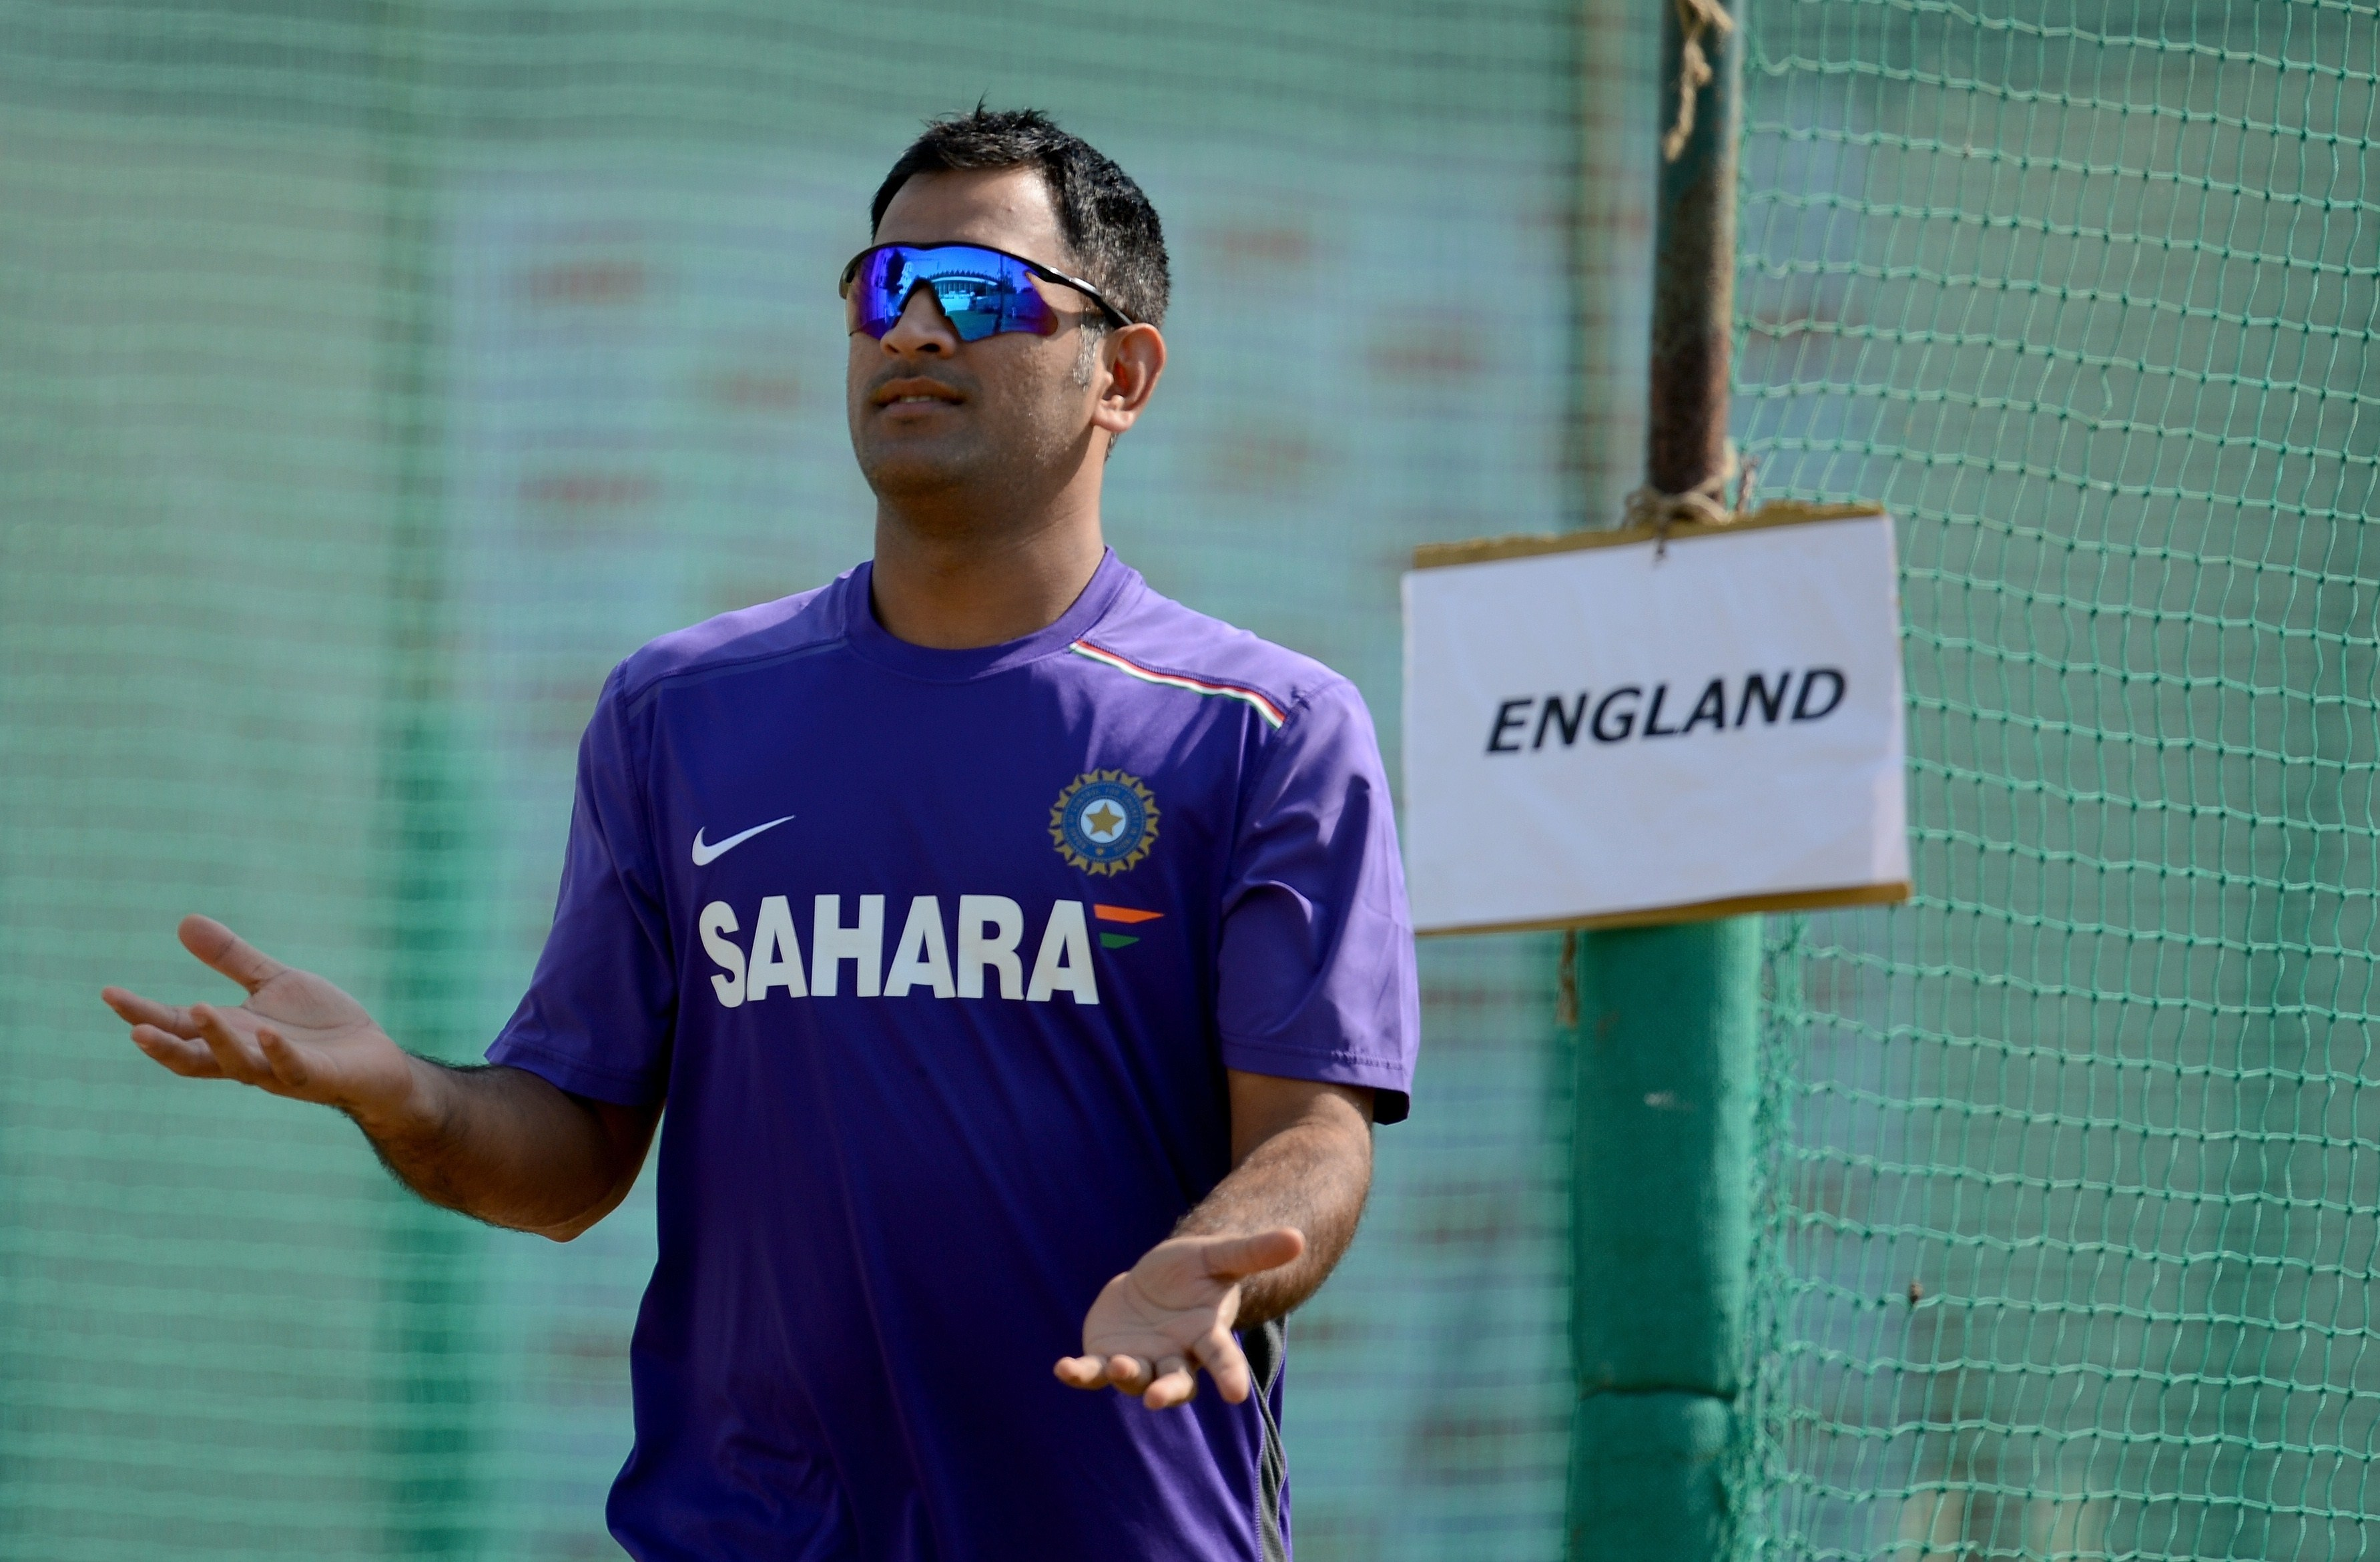 MS Dhoni run out on 99 as England rewarded after day of toil